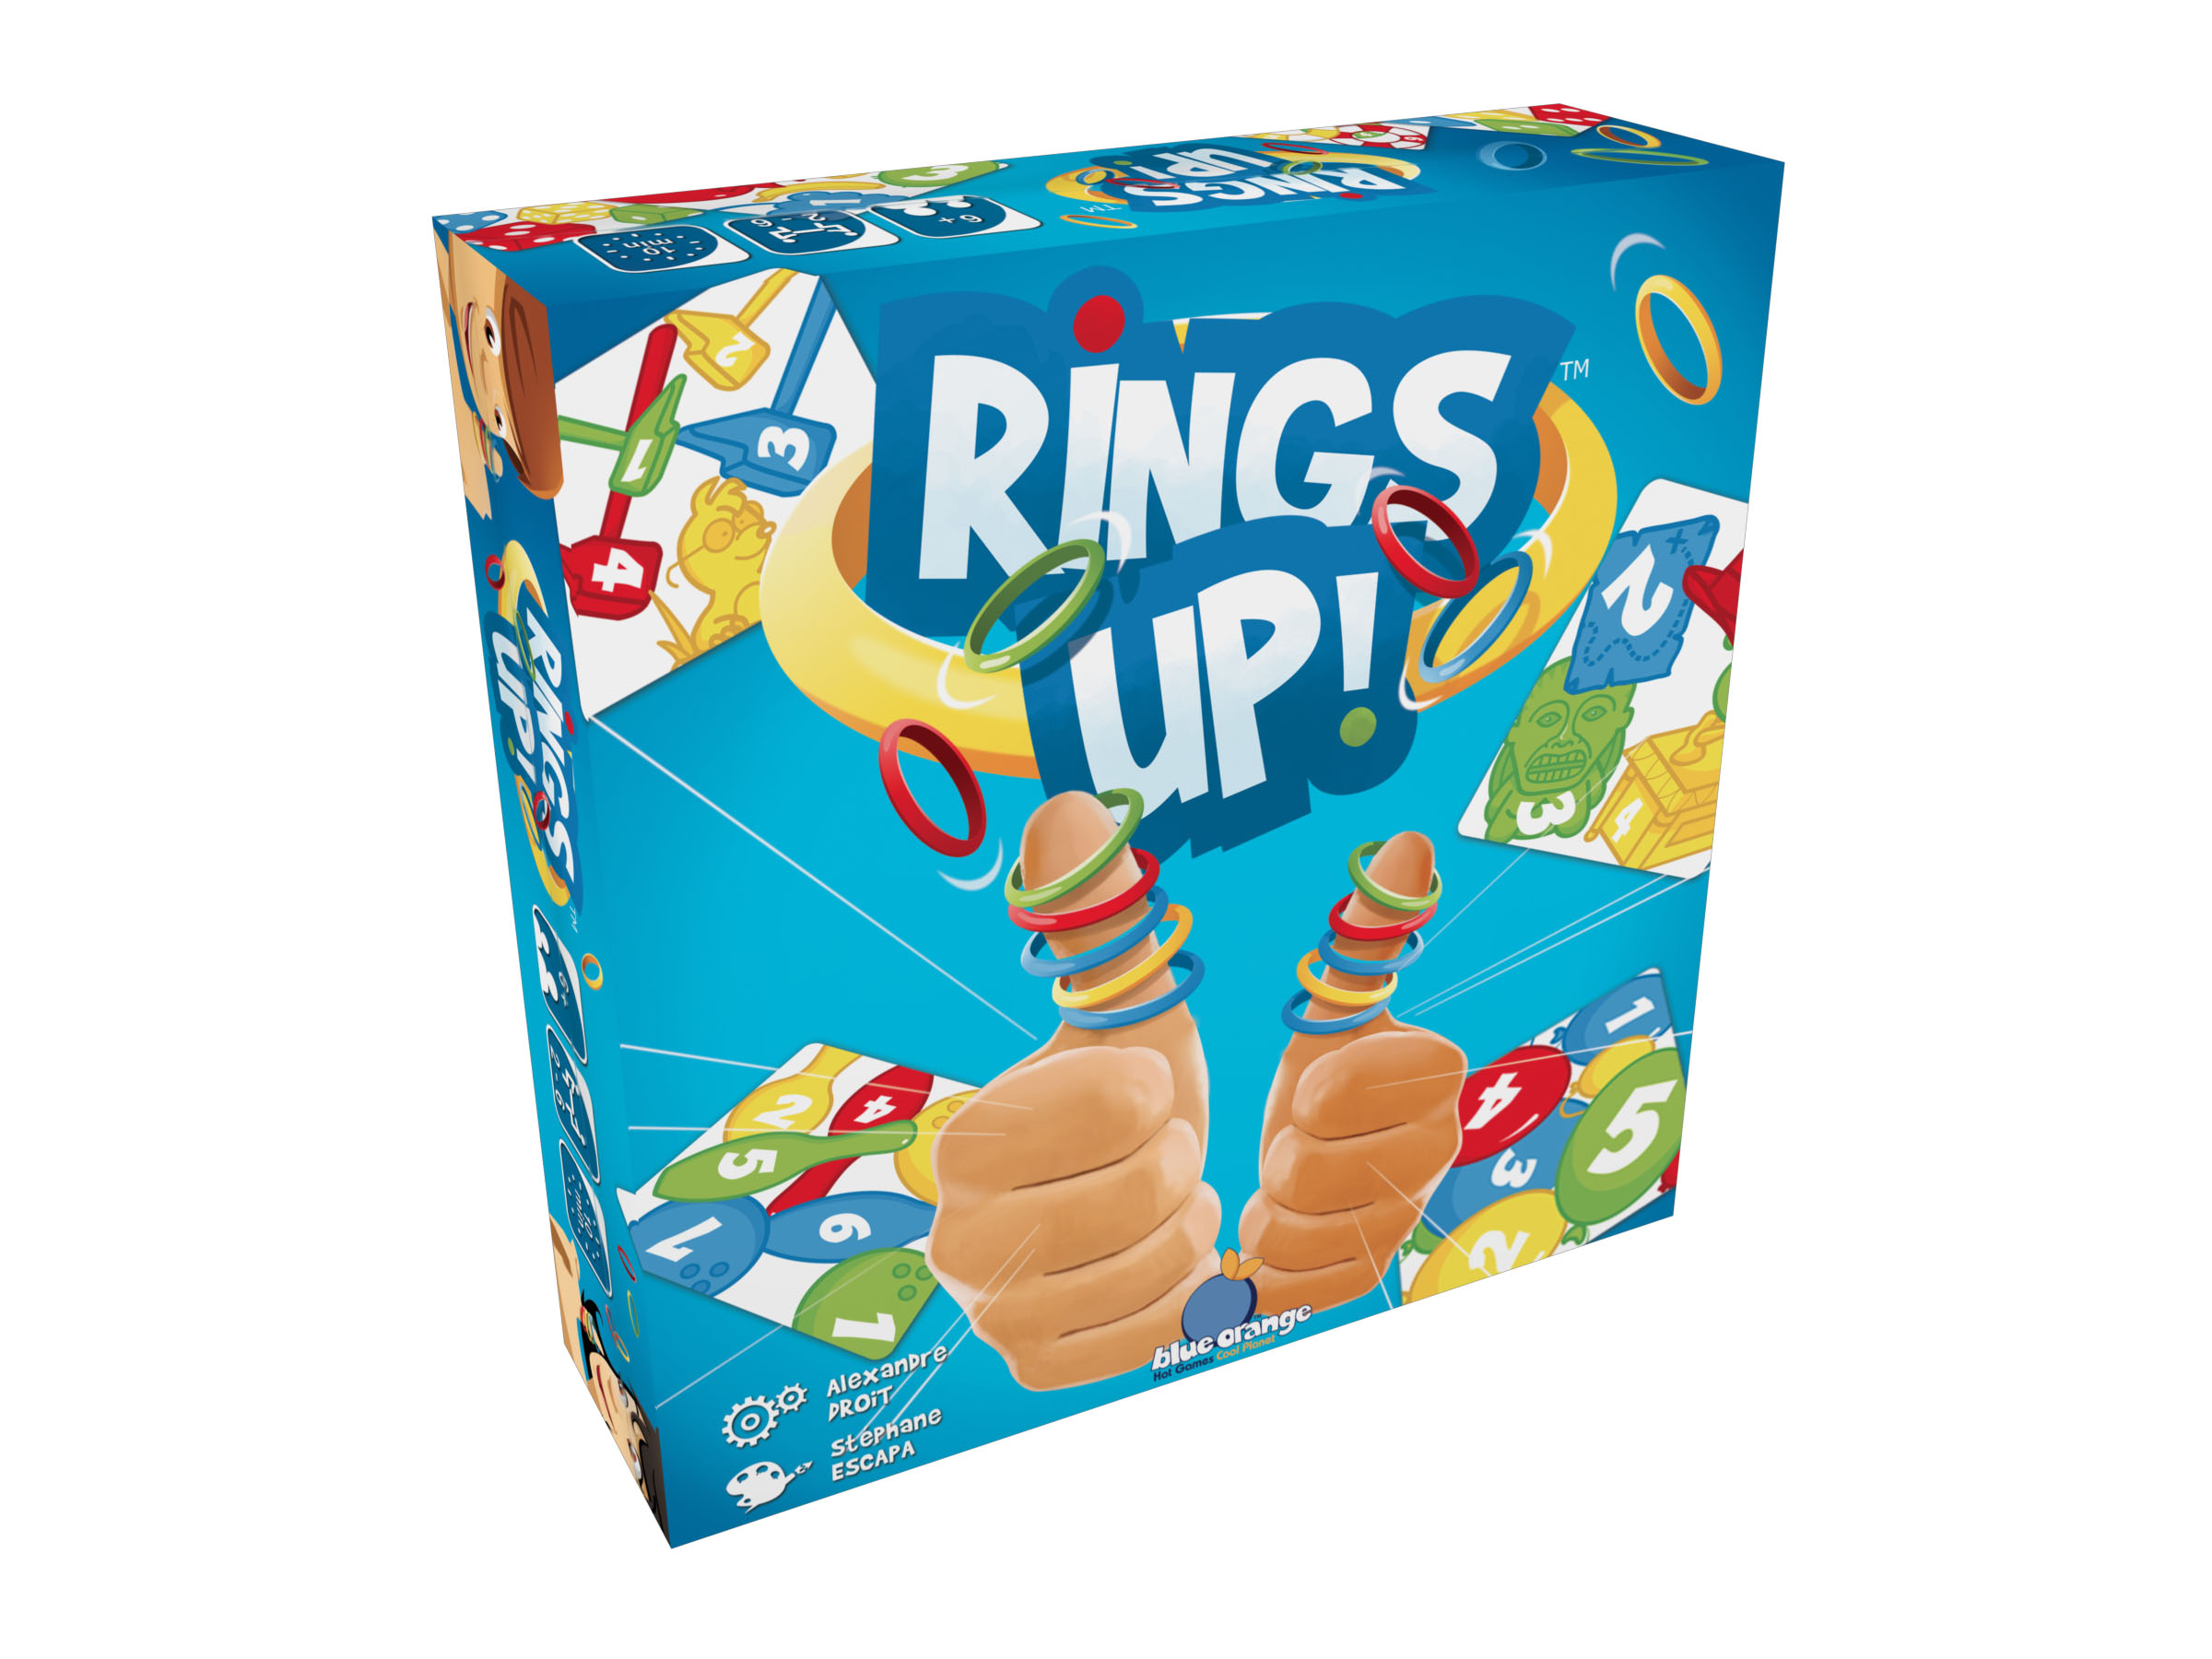 Rings-Up-3D